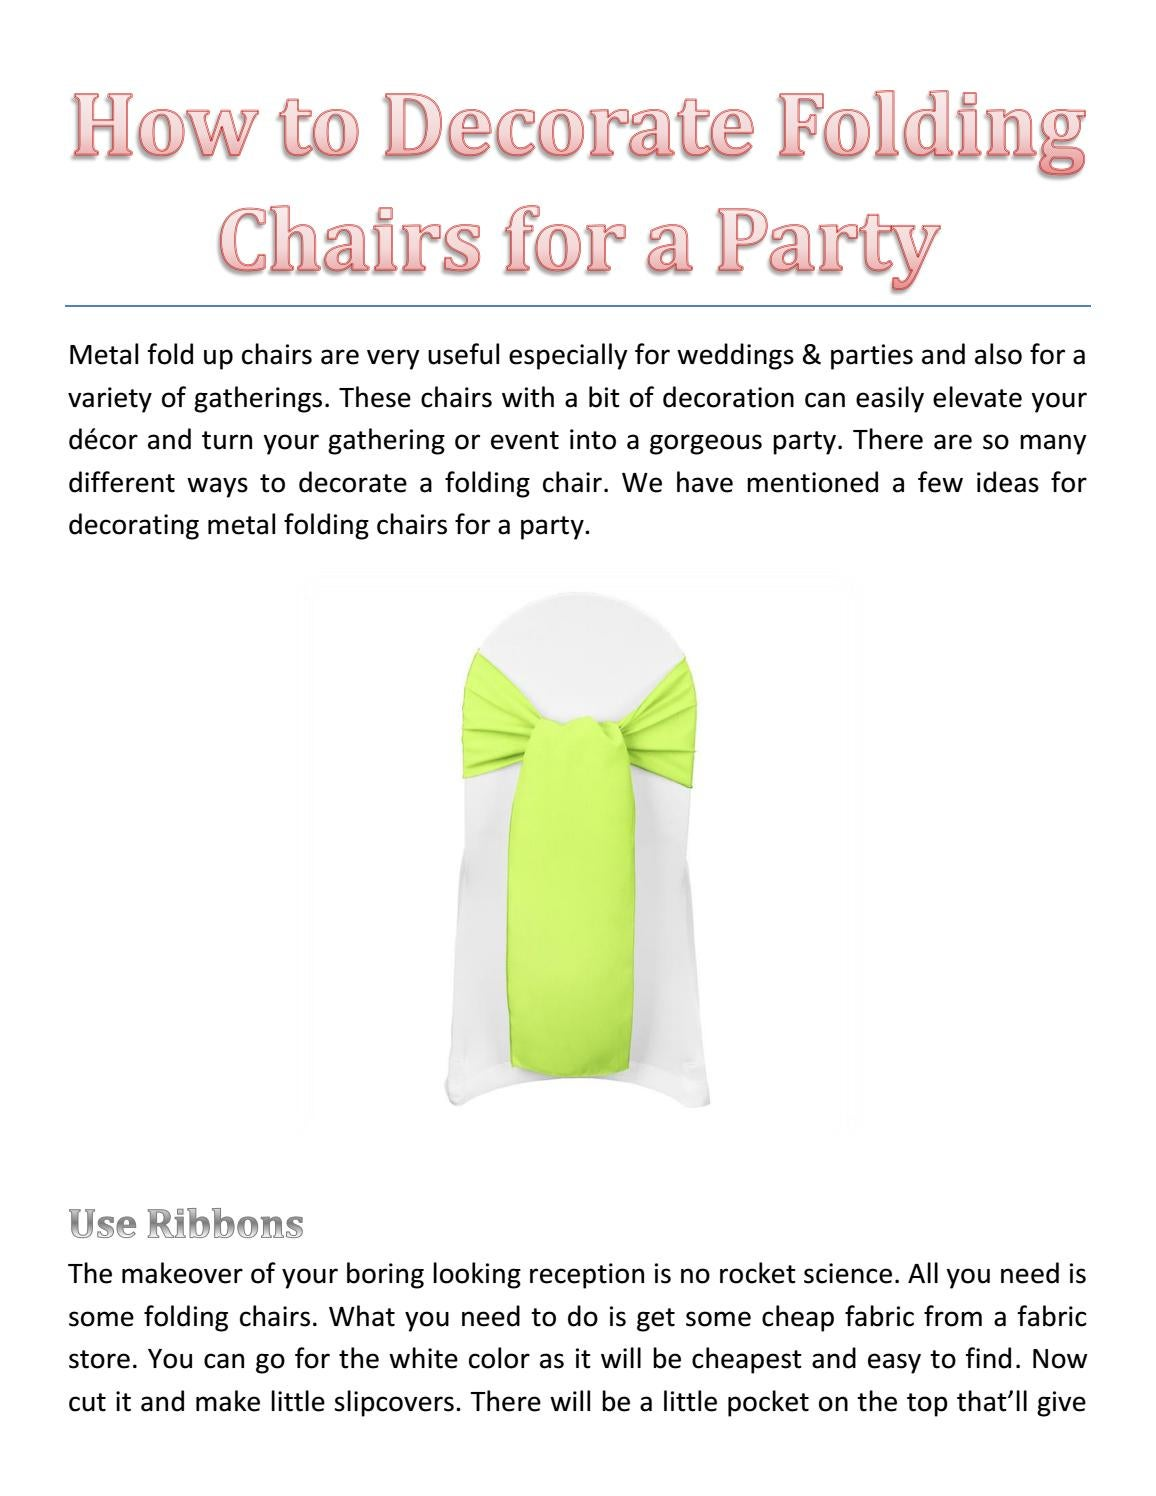 How To Decorate Folding Chairs For A Party By Linda Hudson Issuu